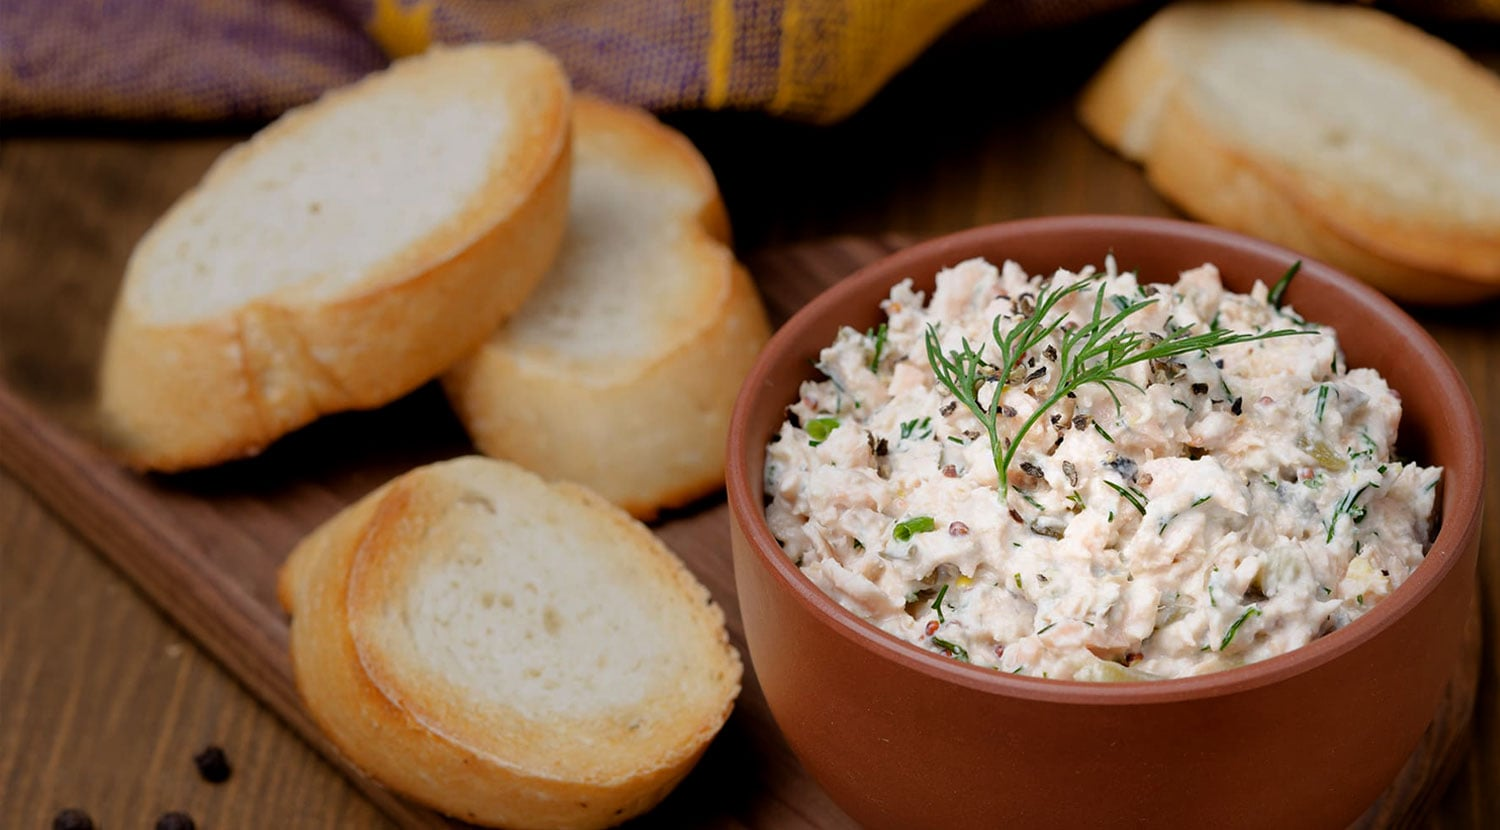 OUR ICONIC HOMEMADE FISH DIP